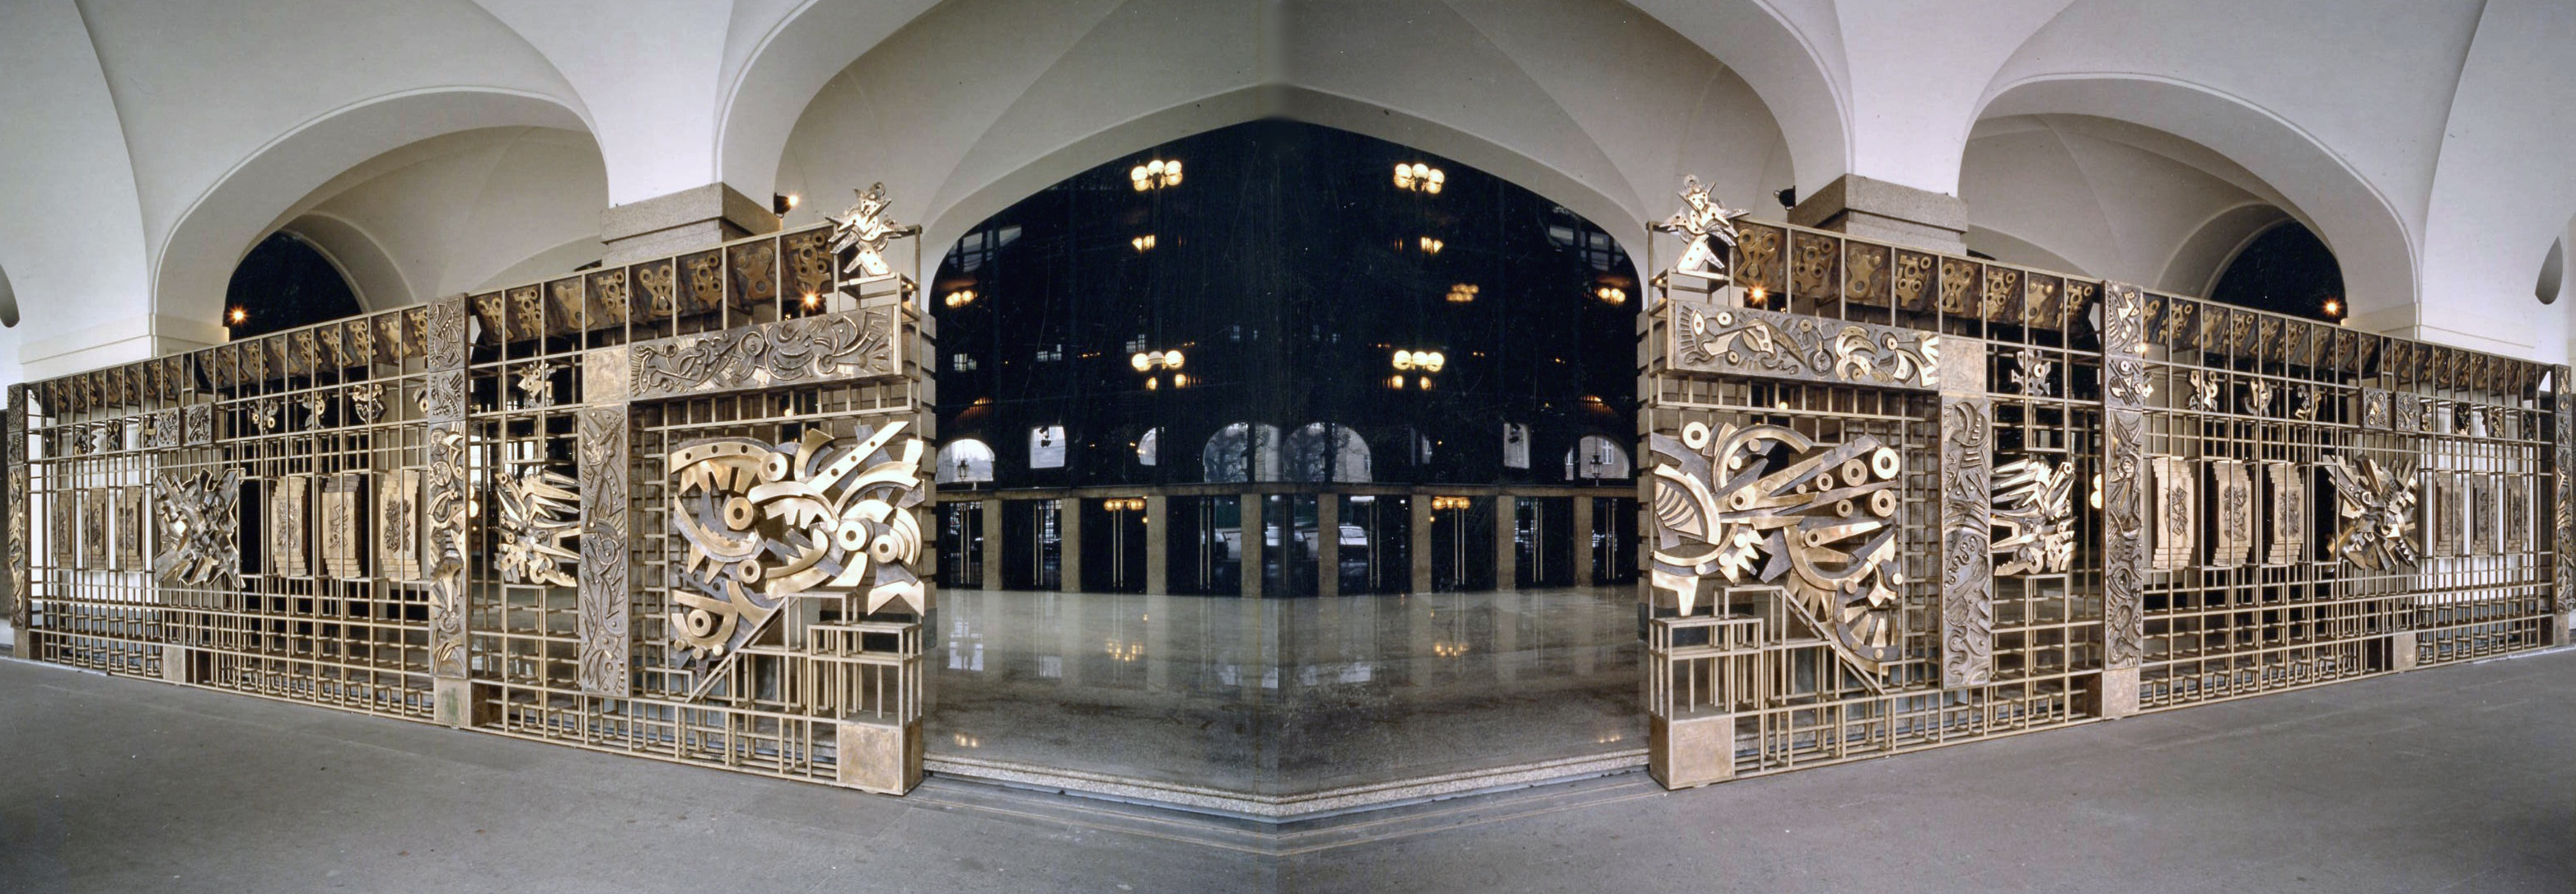 "Perspective photomontage of the main entrance of the Theatre with the bronze gate ""Odissea musicale"", by Umberto Mastroianni"